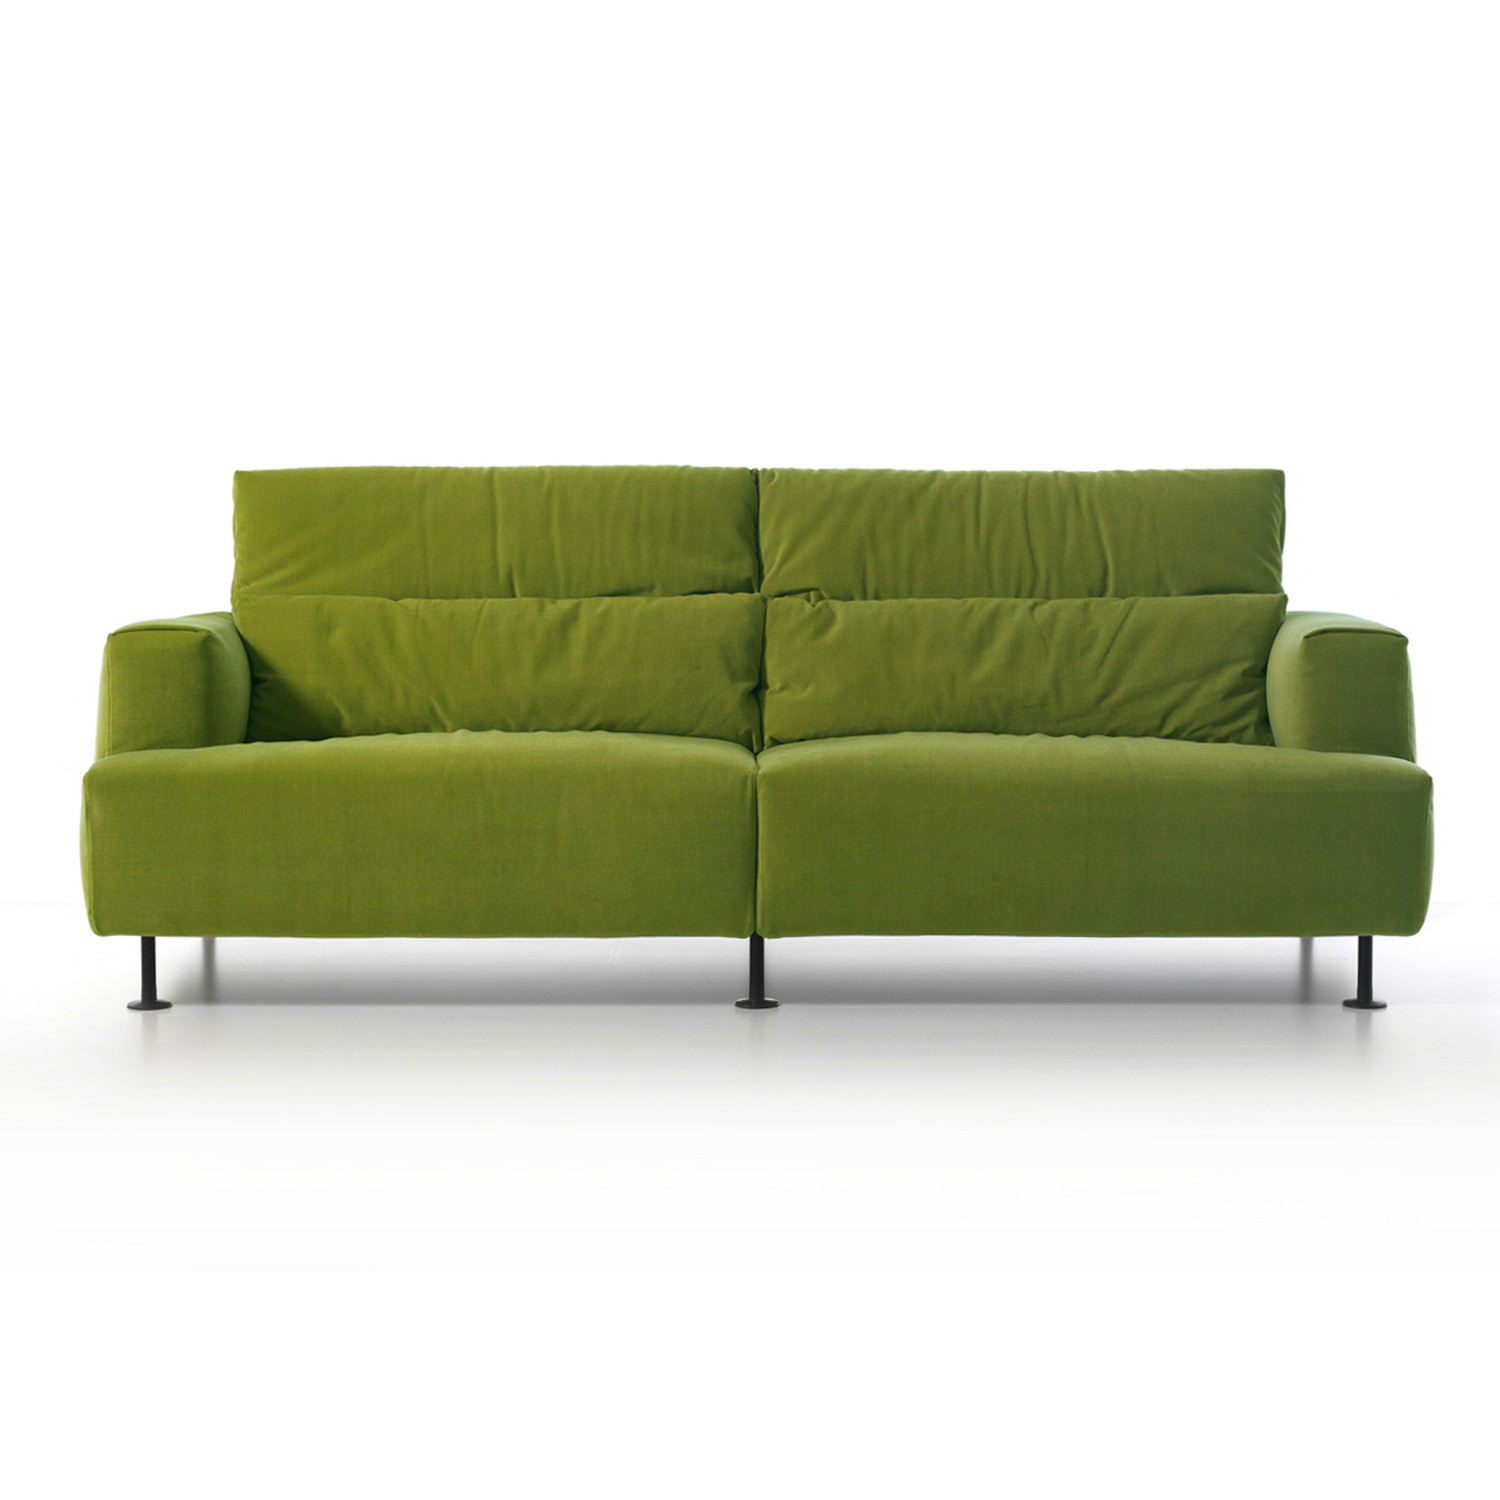 190 Aire Sofa Front with Headrest Extended